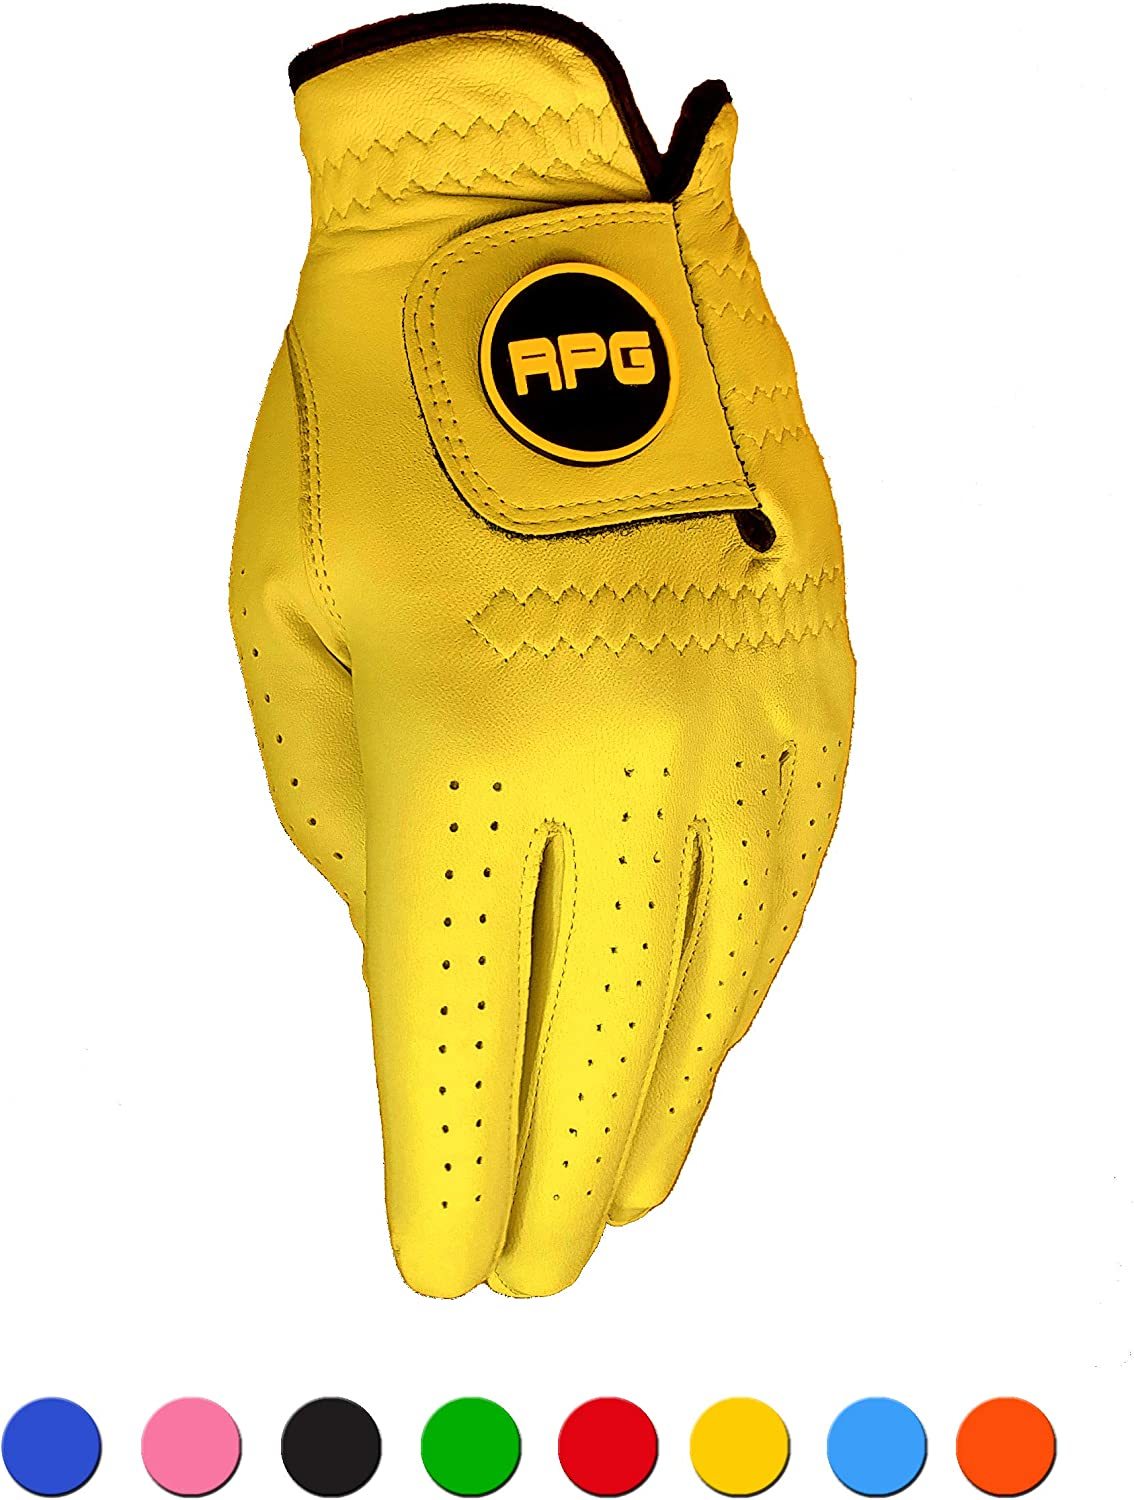 RPG Color Golf Gloves 100 AA CABRETTA Leather-Men s Worn on Left Hand -Match Colors with Your Golf Shirt, Golf Pants, Golf hat, Golf Bag, Golf Brush, Golf Towel, Golf tees